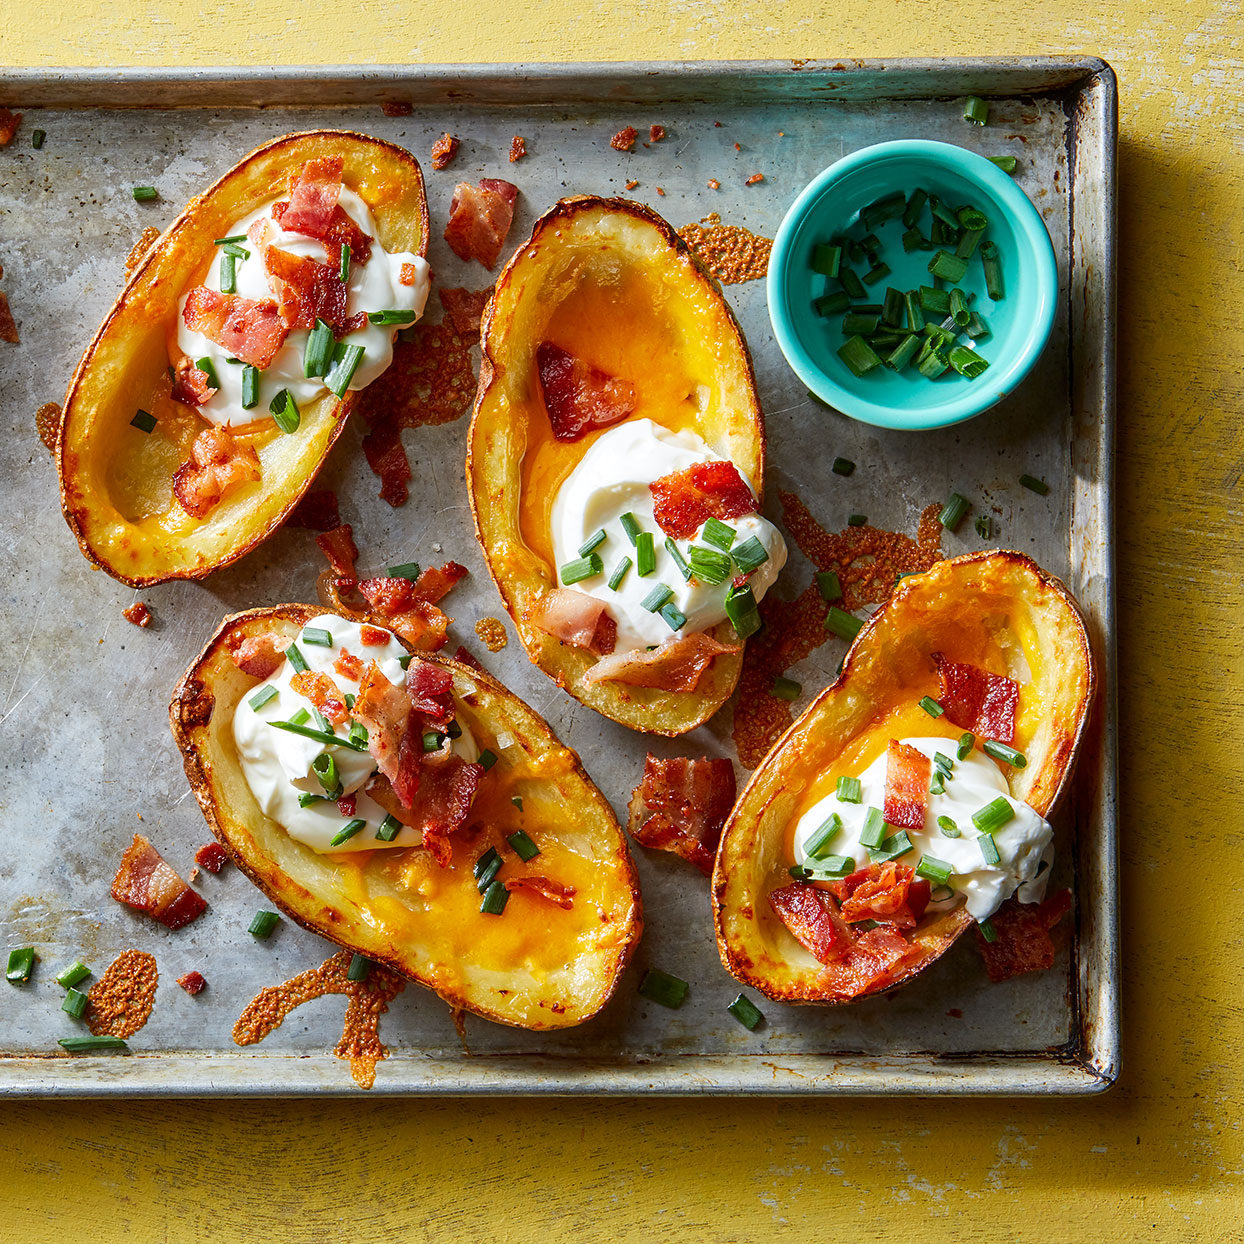 Serve these crispy baked potato skins as a side or cut them into 1-inch pieces and serve as an appetizer. Refrigerate or freeze the potato flesh to make mashed potatoes another night.